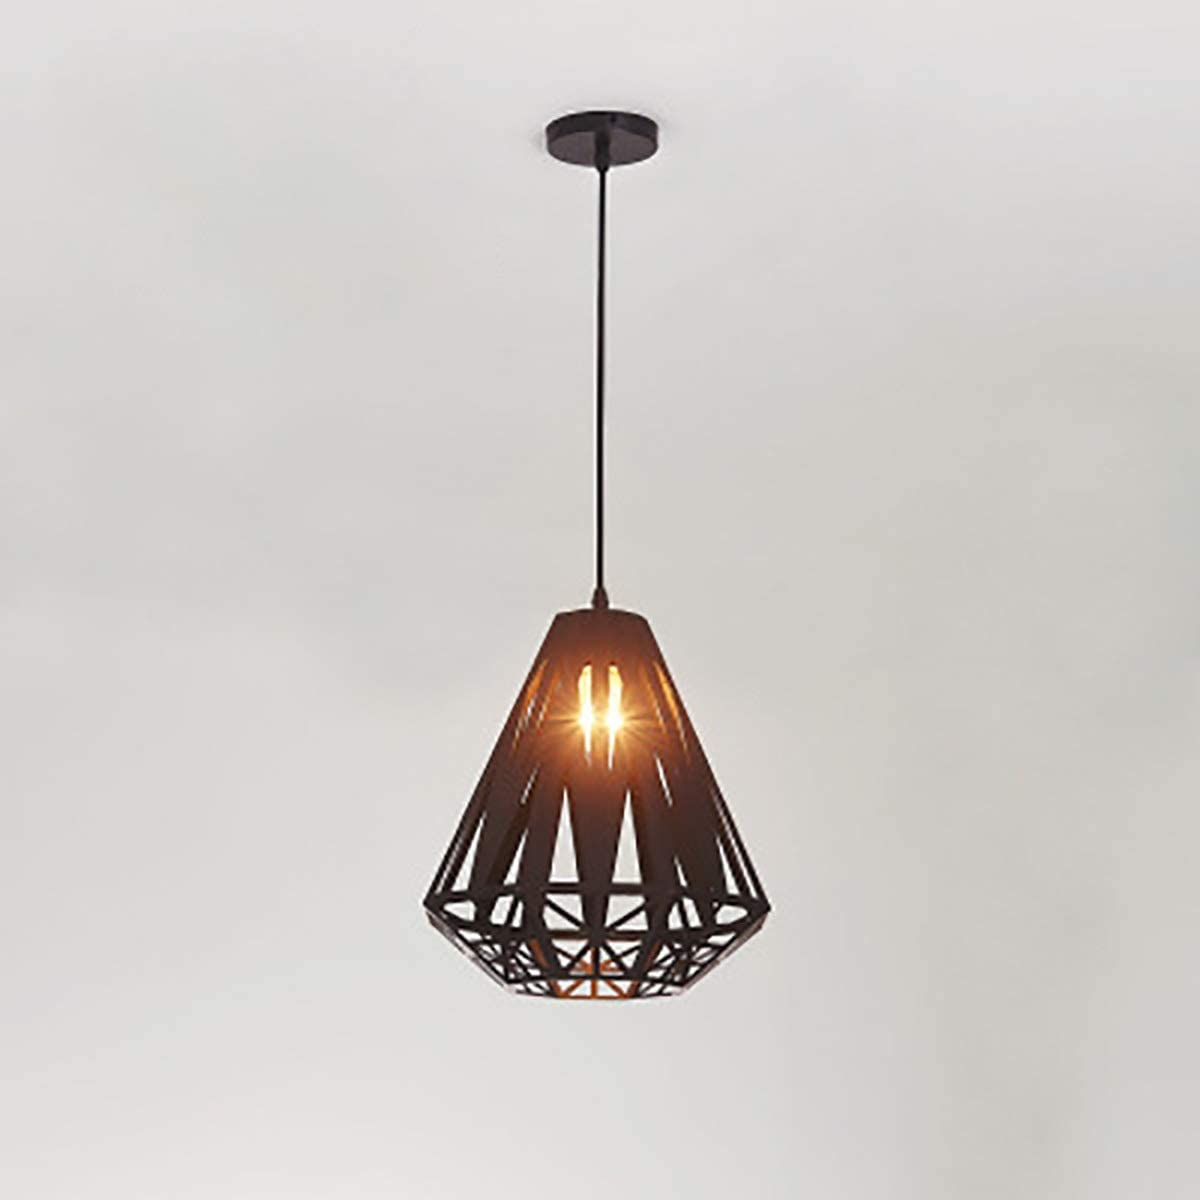 Qingbaotong Chandelier Lamp Seasonal Wrap Introduction Modern Industry Pendant Ir Light Quantity limited LED